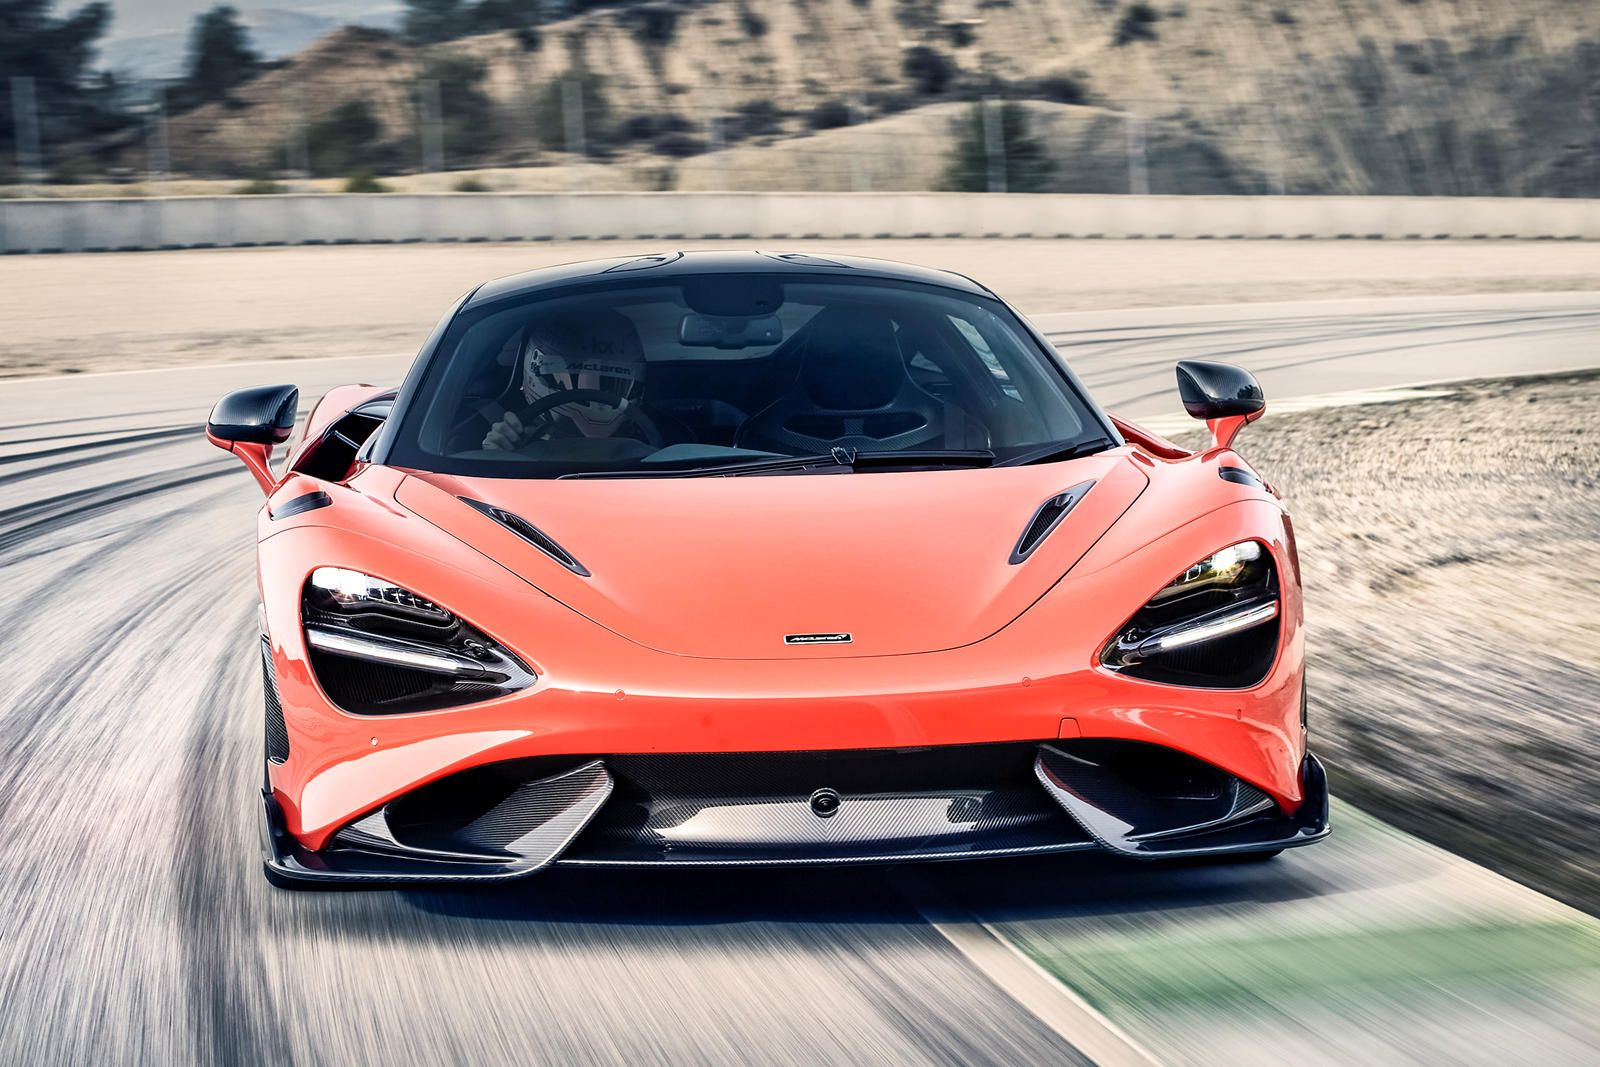 Meet The All New 2021 Mclaren 765lt Lighter Faster And More Extreme Carbuzz In 2020 Mclaren Super Cars Racing Seats